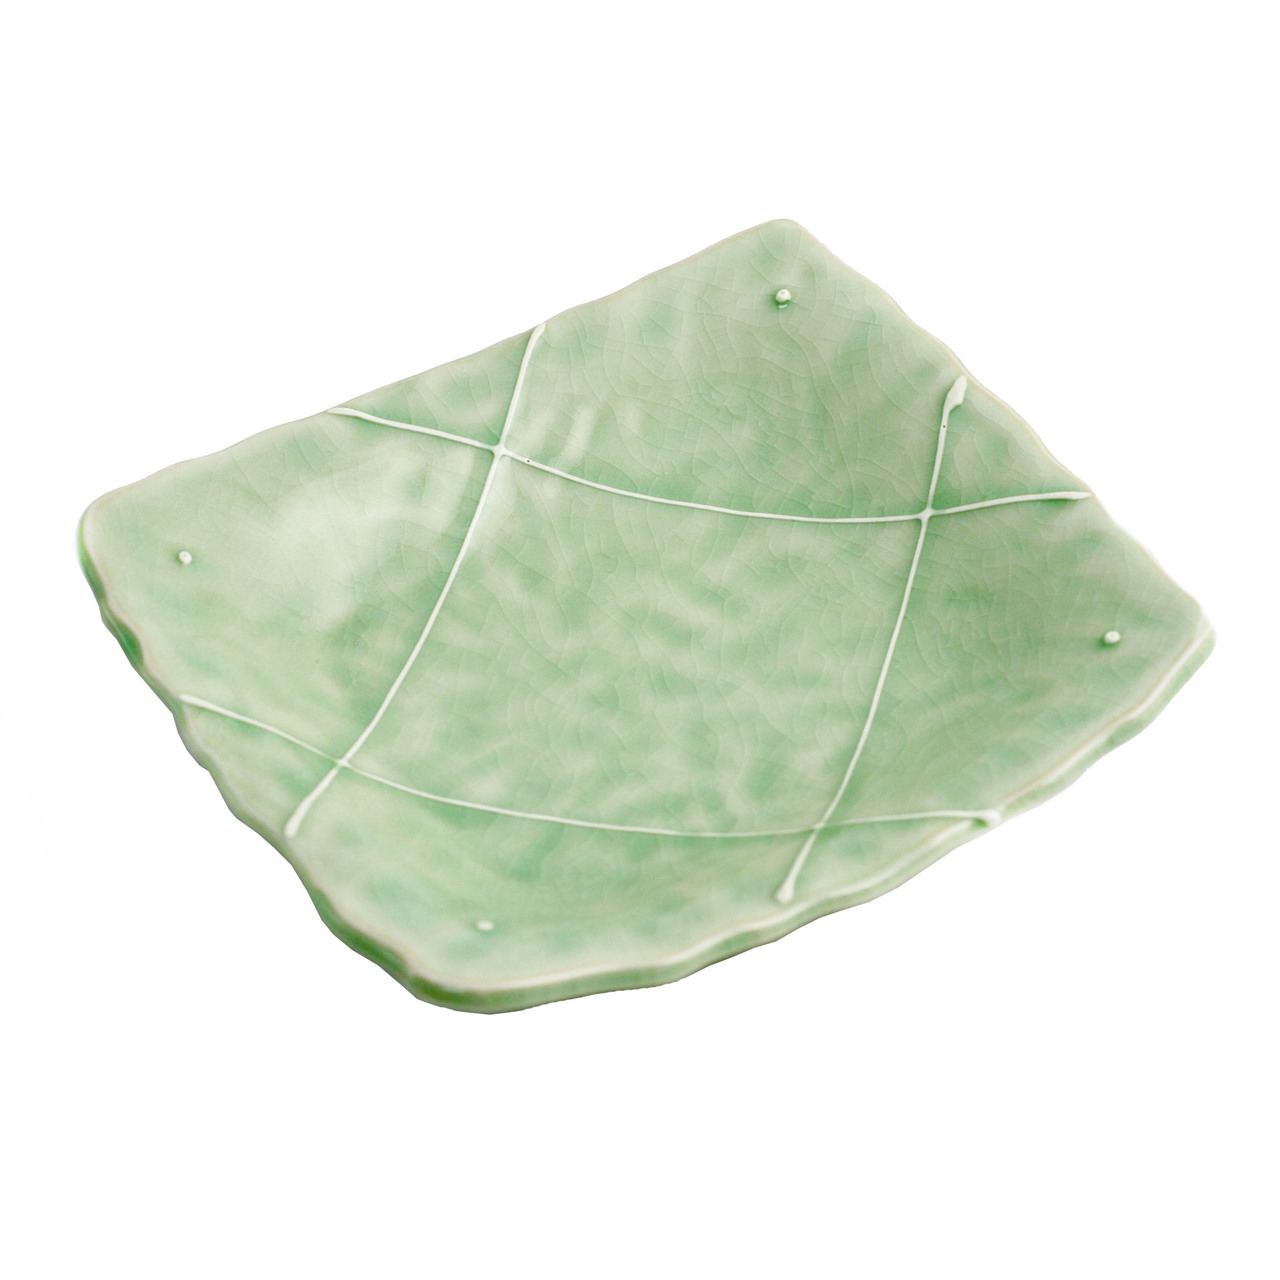 Clearance Cracked Jade Green Plate 6 65 X 6 02 Mtc Kitchen